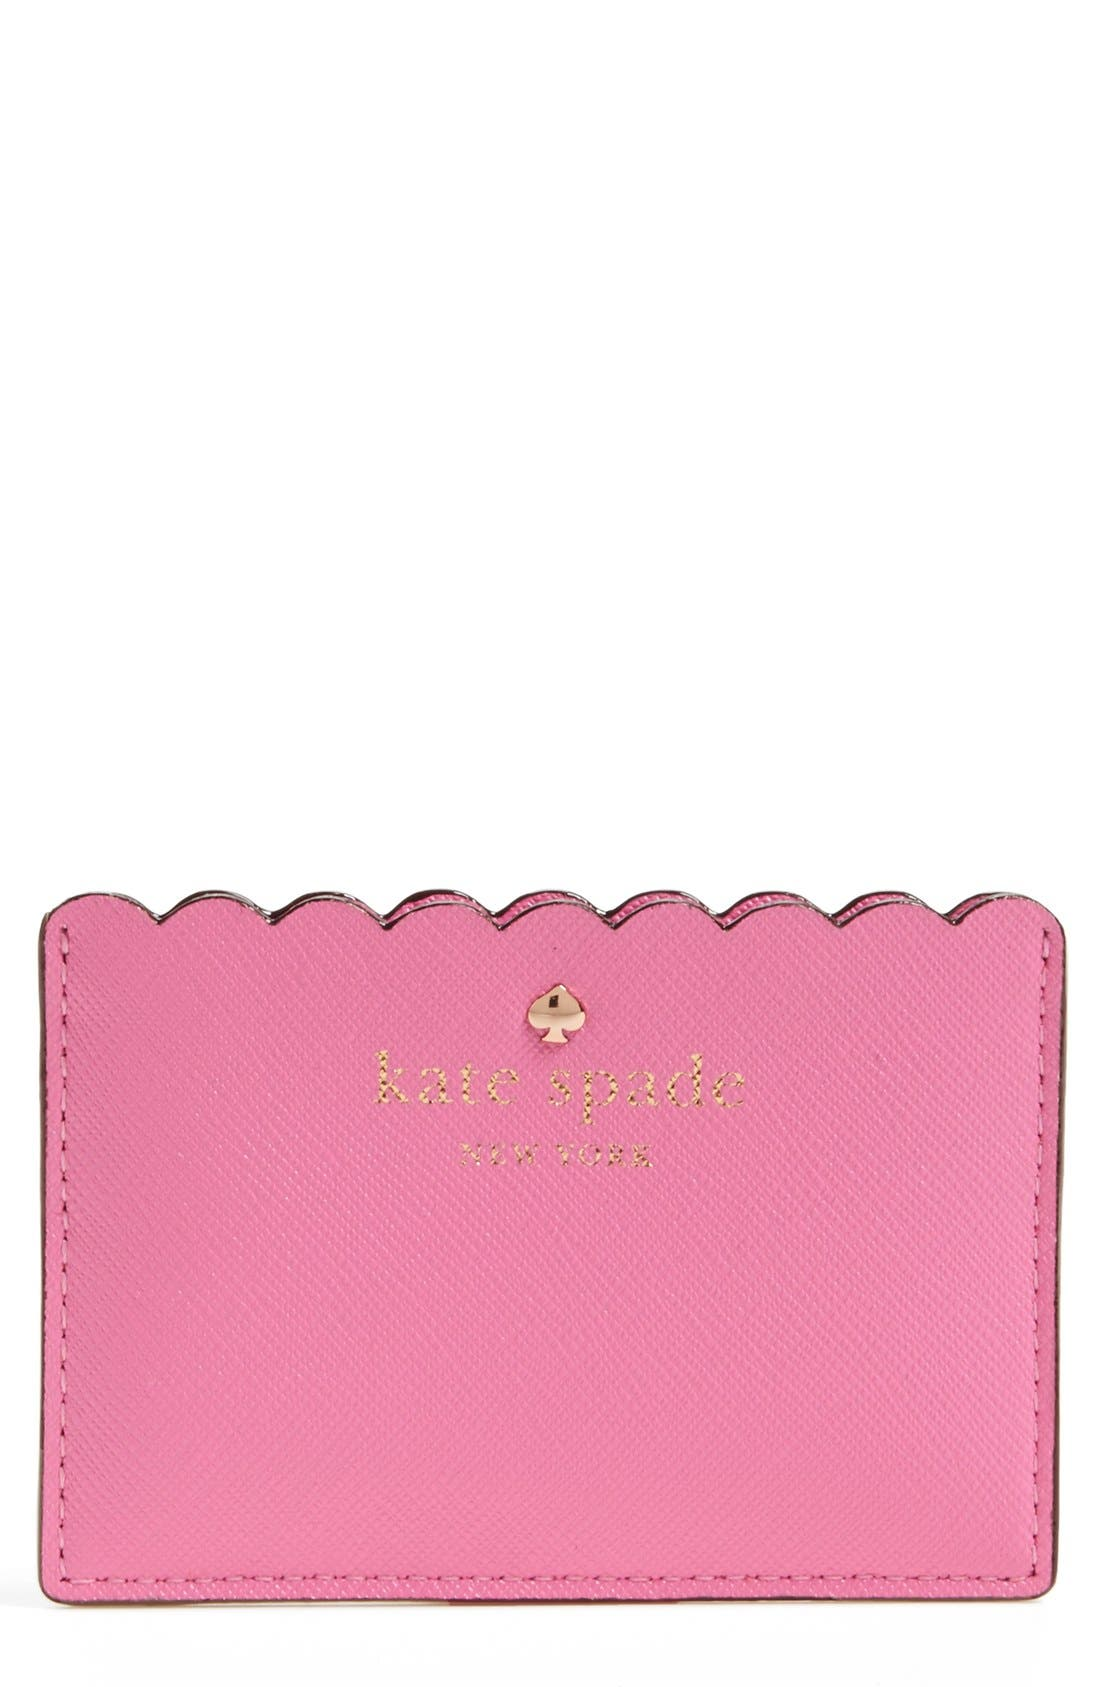 Alternate Image 1 Selected - kate spade new york 'cape drive' saffiano leather card holder